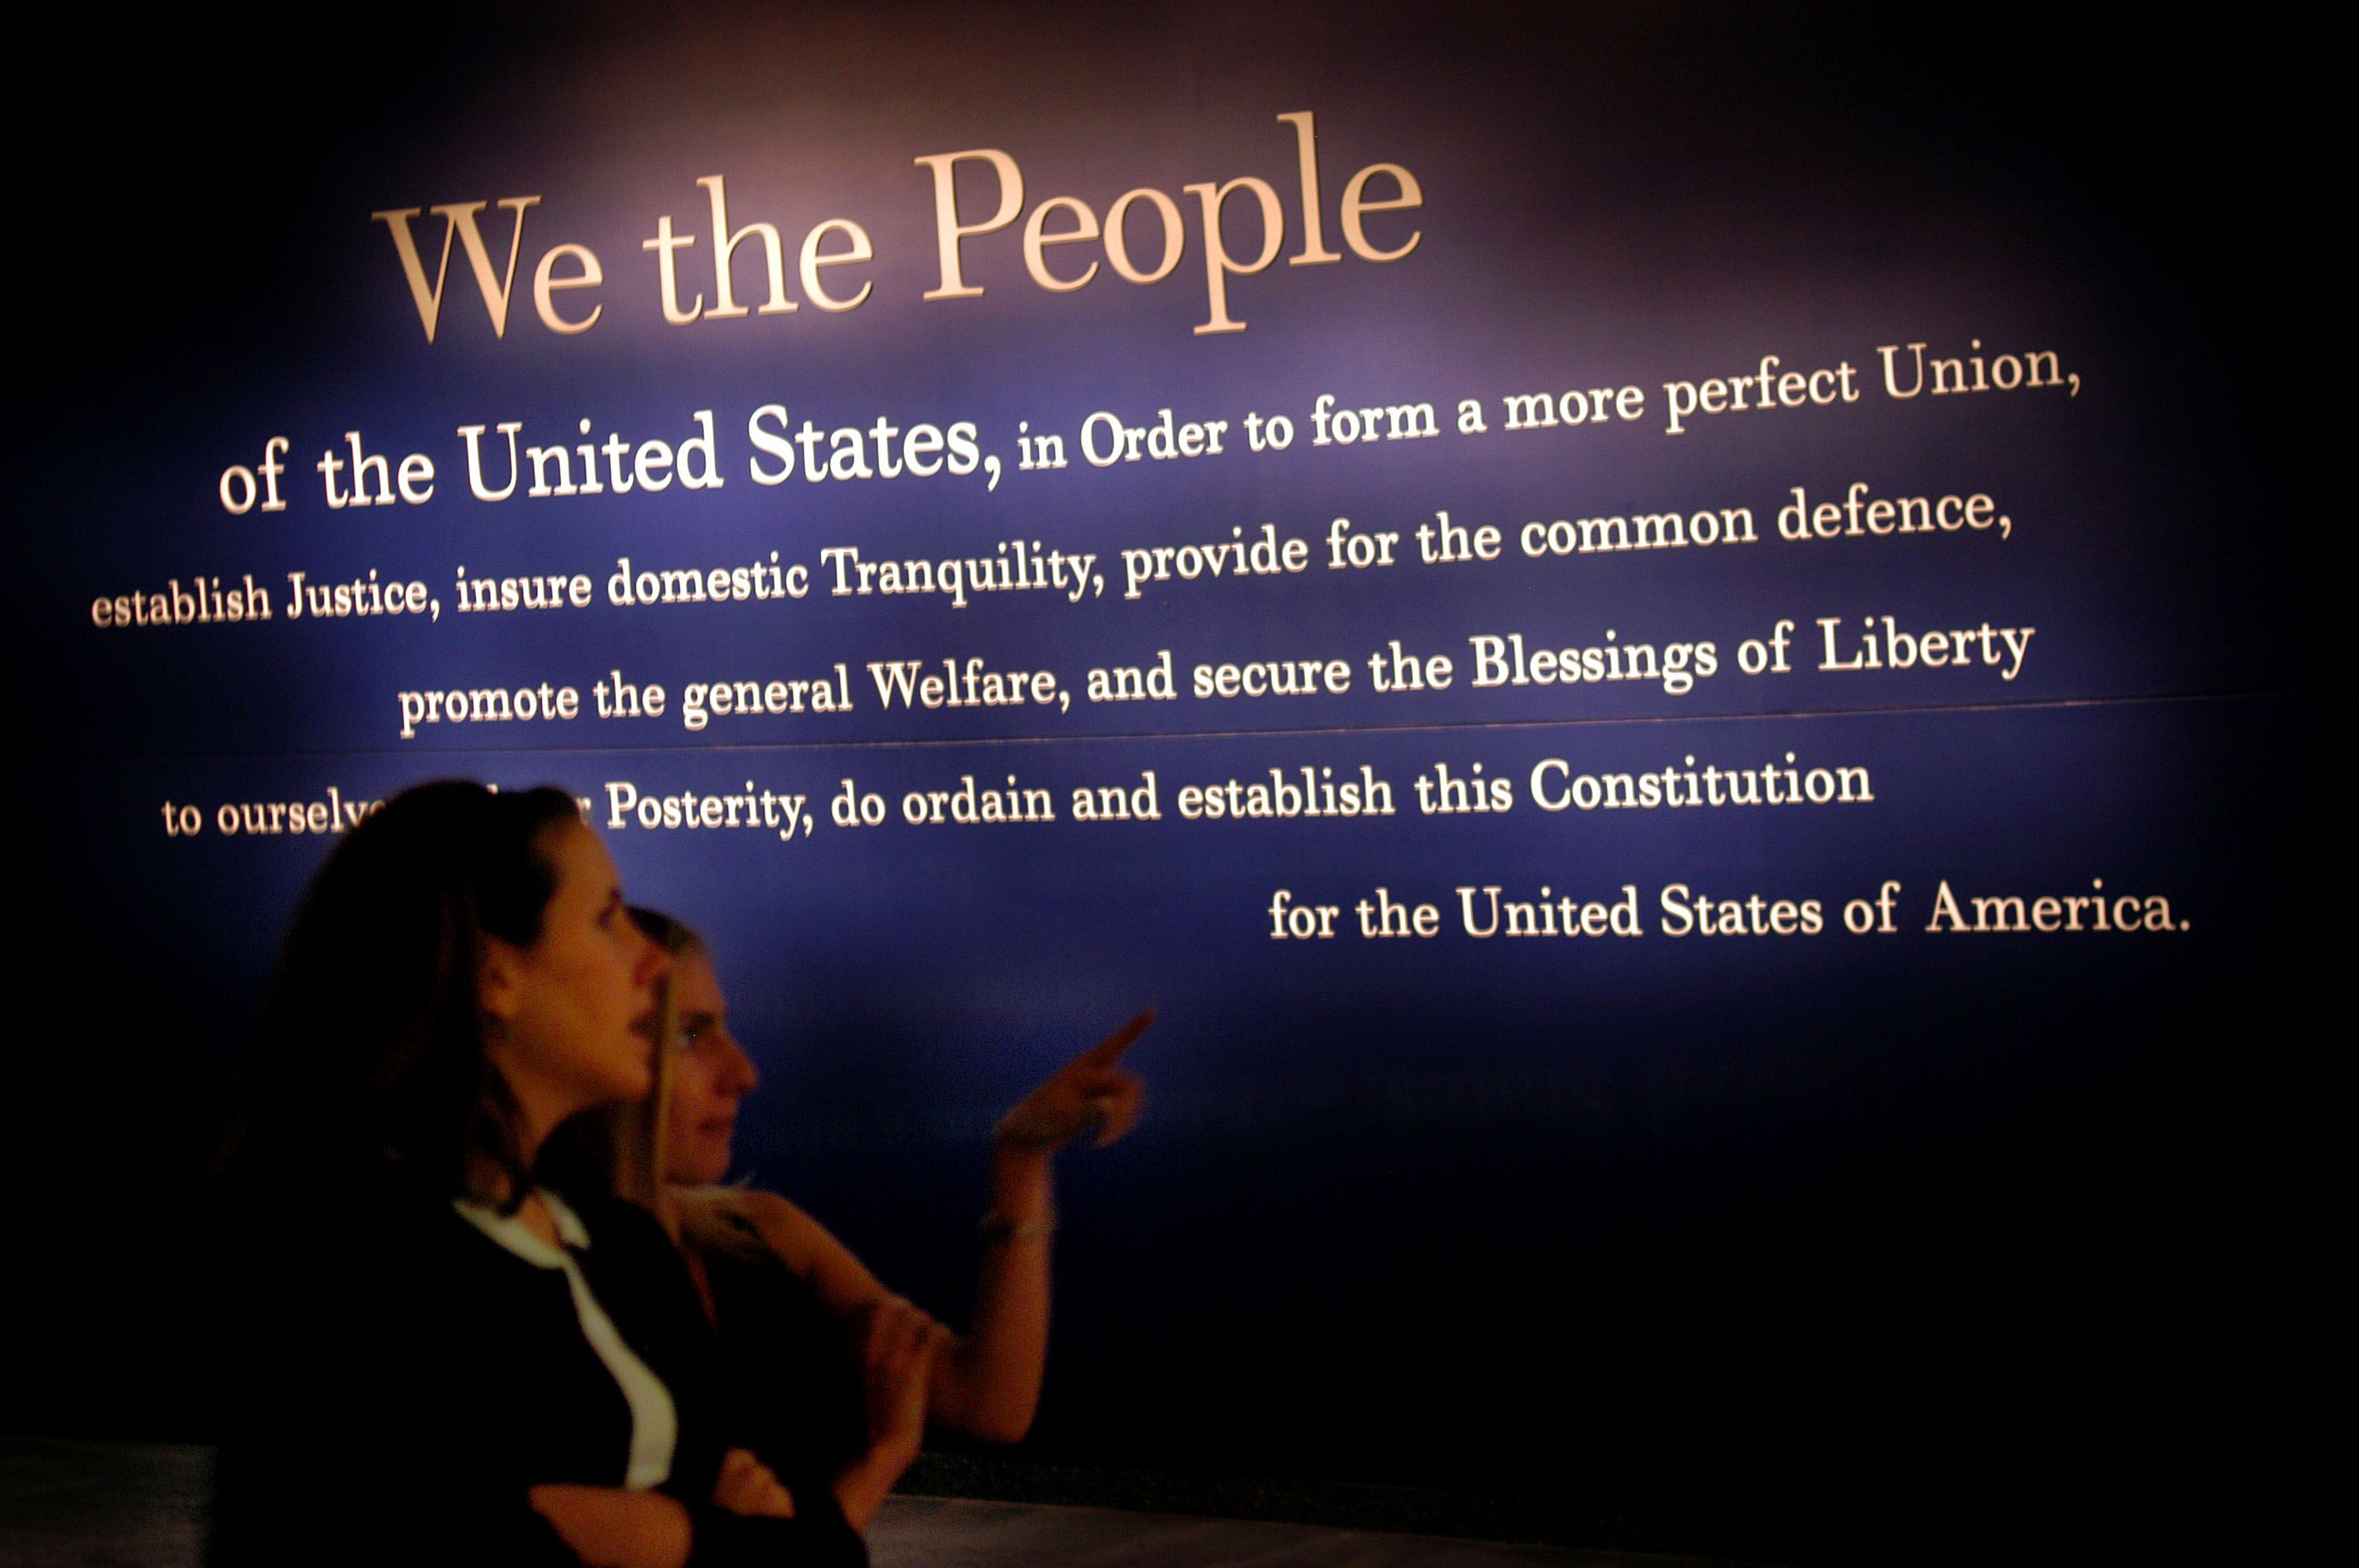 How To Amend the Constitution - About the Process